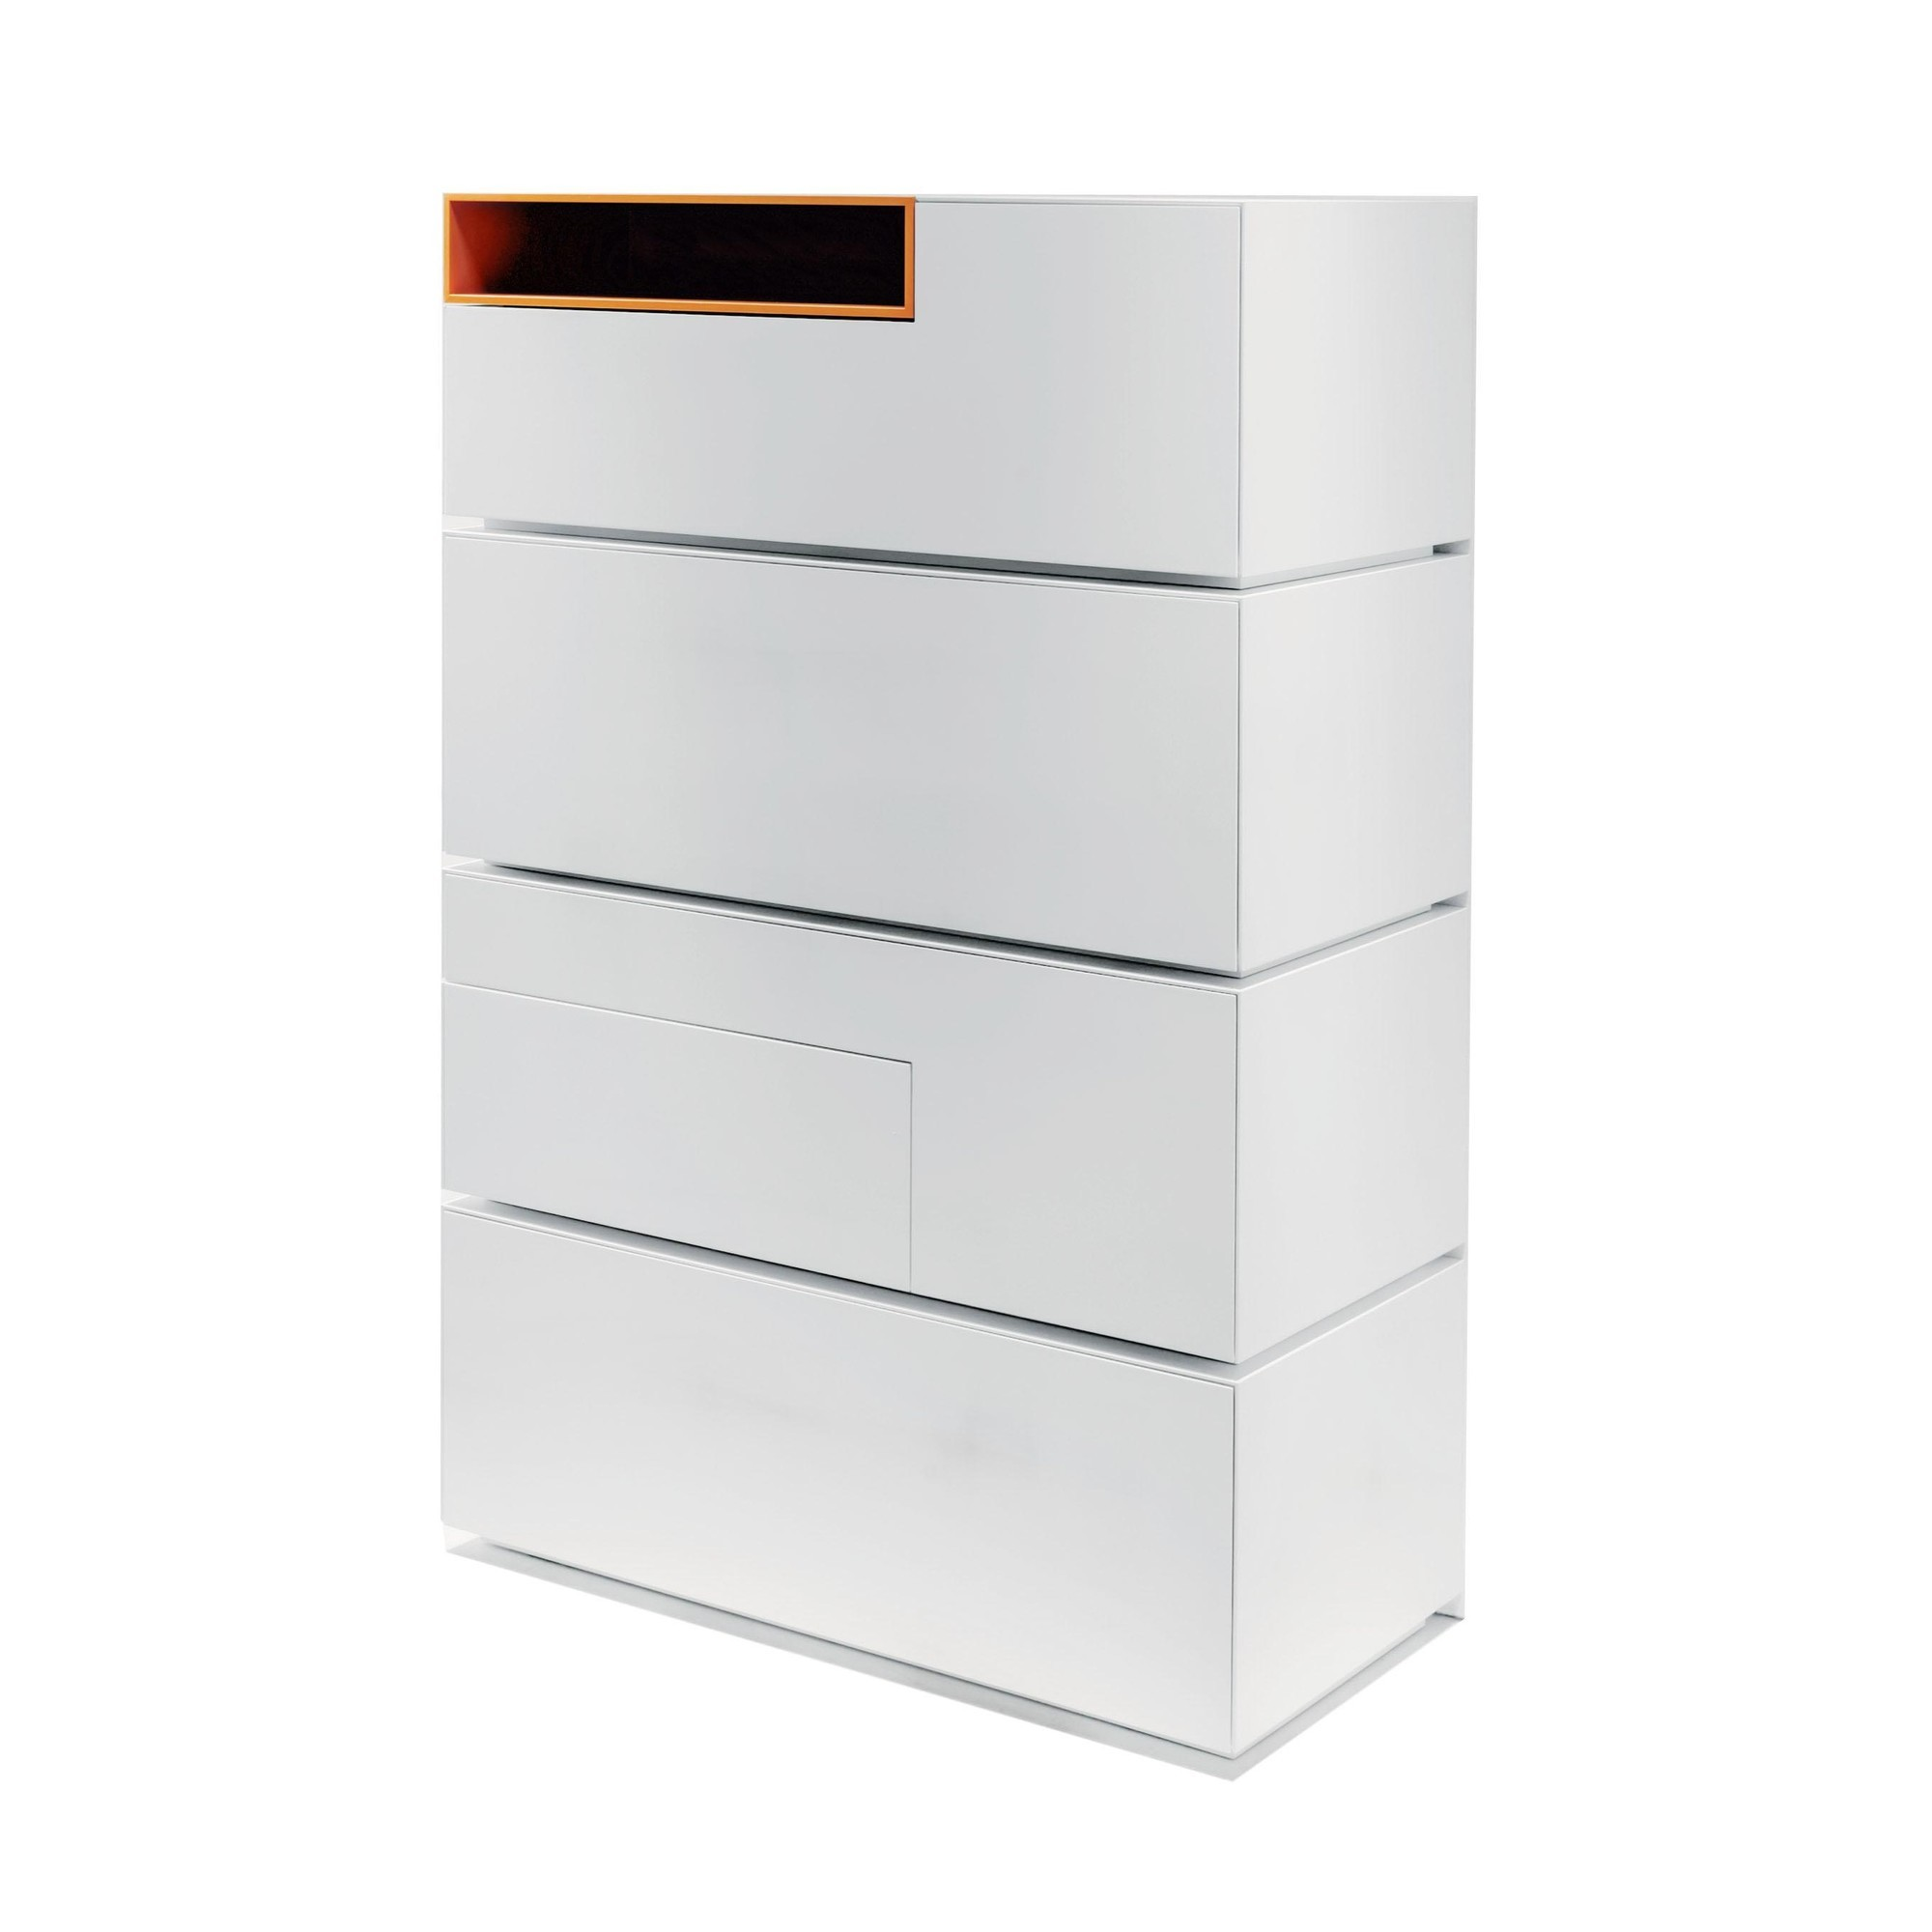 Hochschrank Mit Schubladen Inmotion Highboard Chest Of Drawers